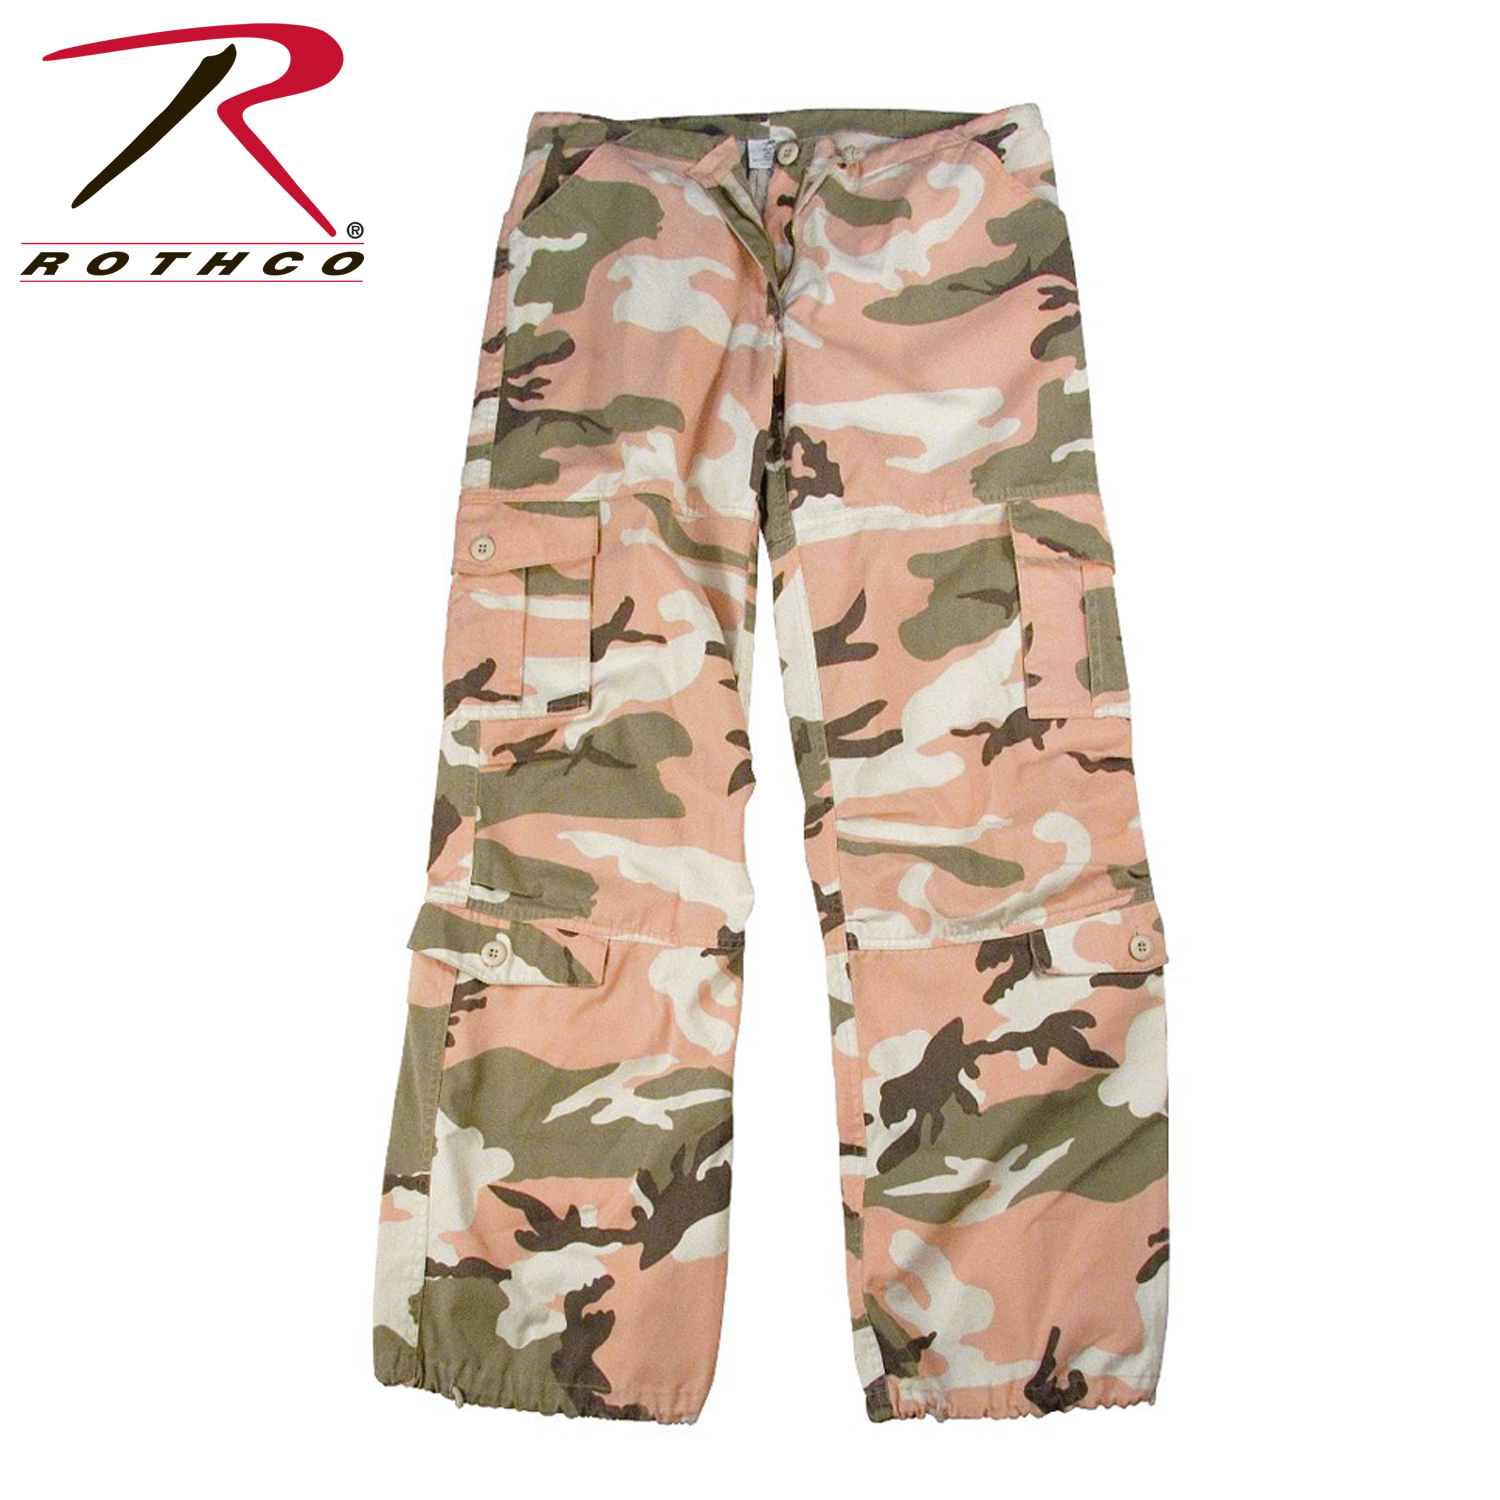 0d93017efdb72 Details about Rothco 3996 Womens Camo Vintage Paratrooper Fatigue Pants - Subdued  Pink Camo